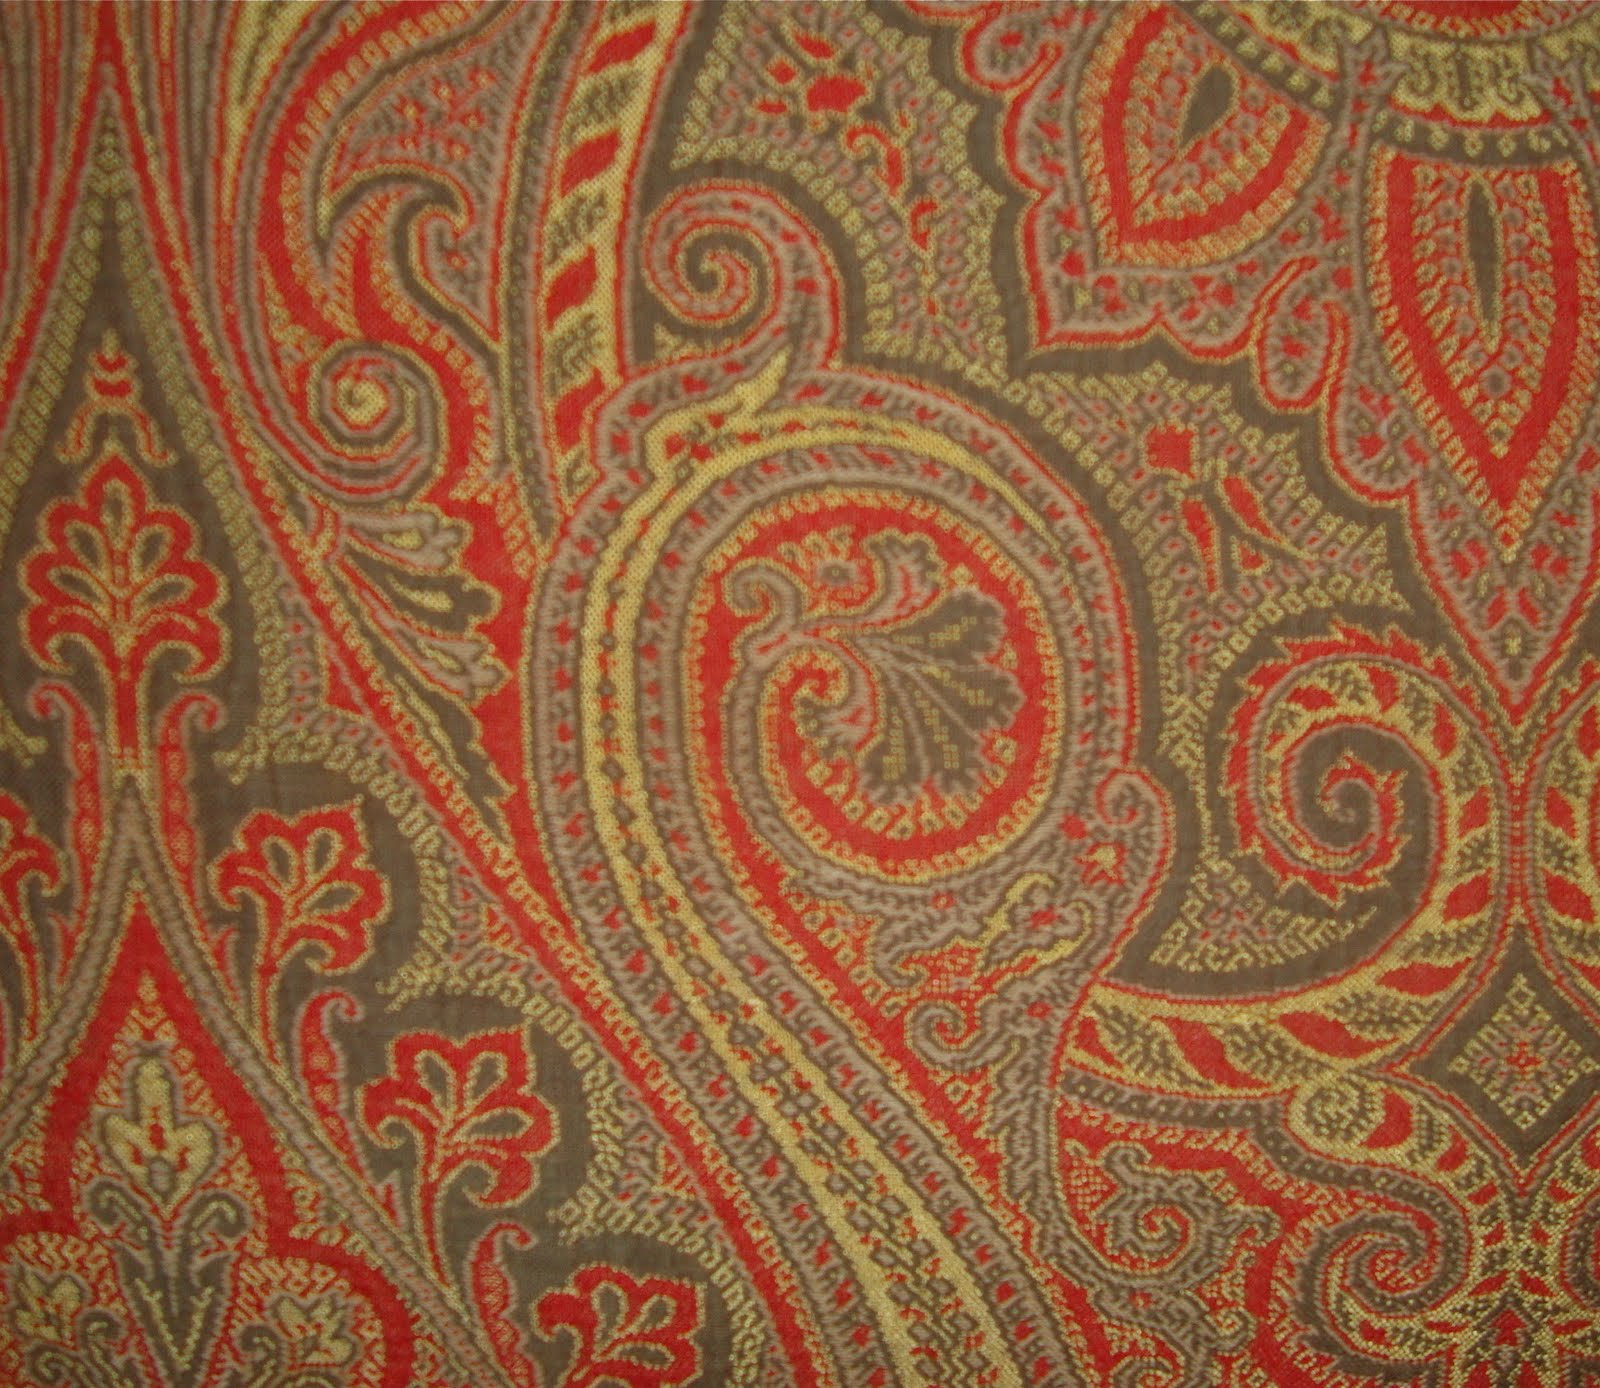 Morgaine Le Fay antique Textiles and More: Paisley Shawls ...